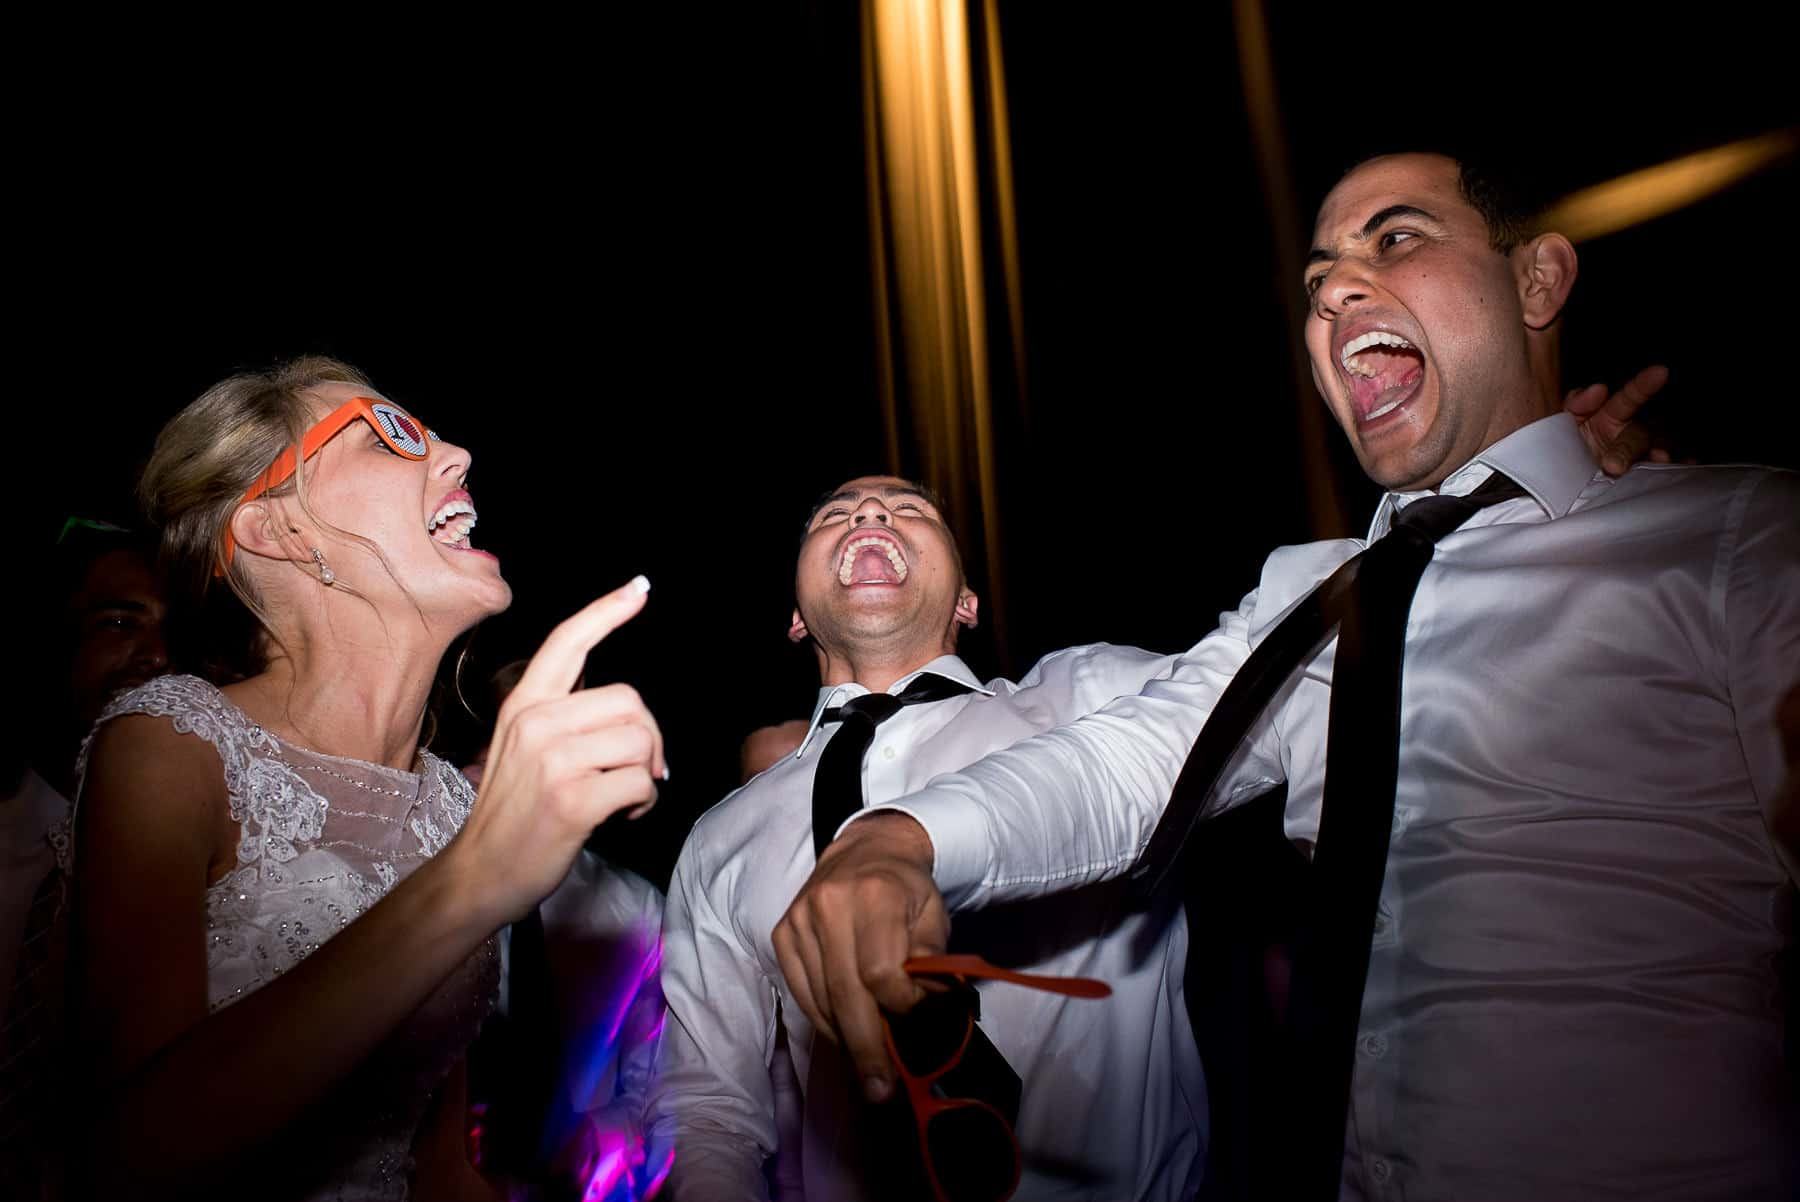 crazy wedding dancefloor photos